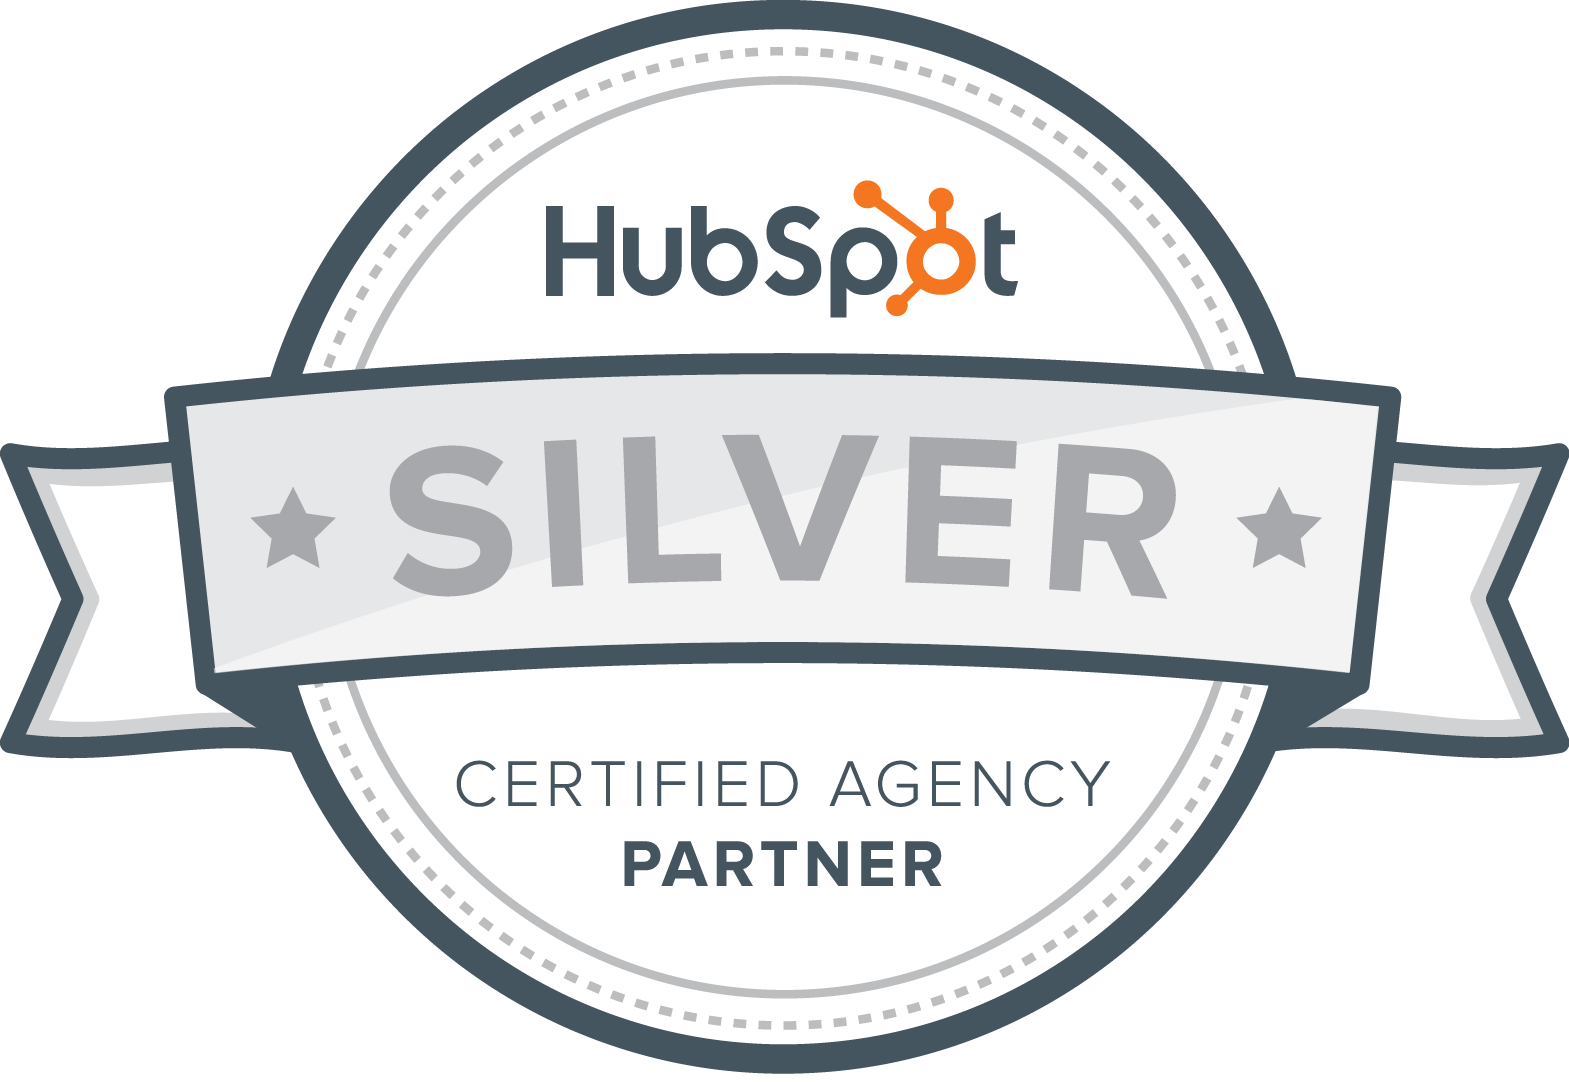 hubspot-certified-partners